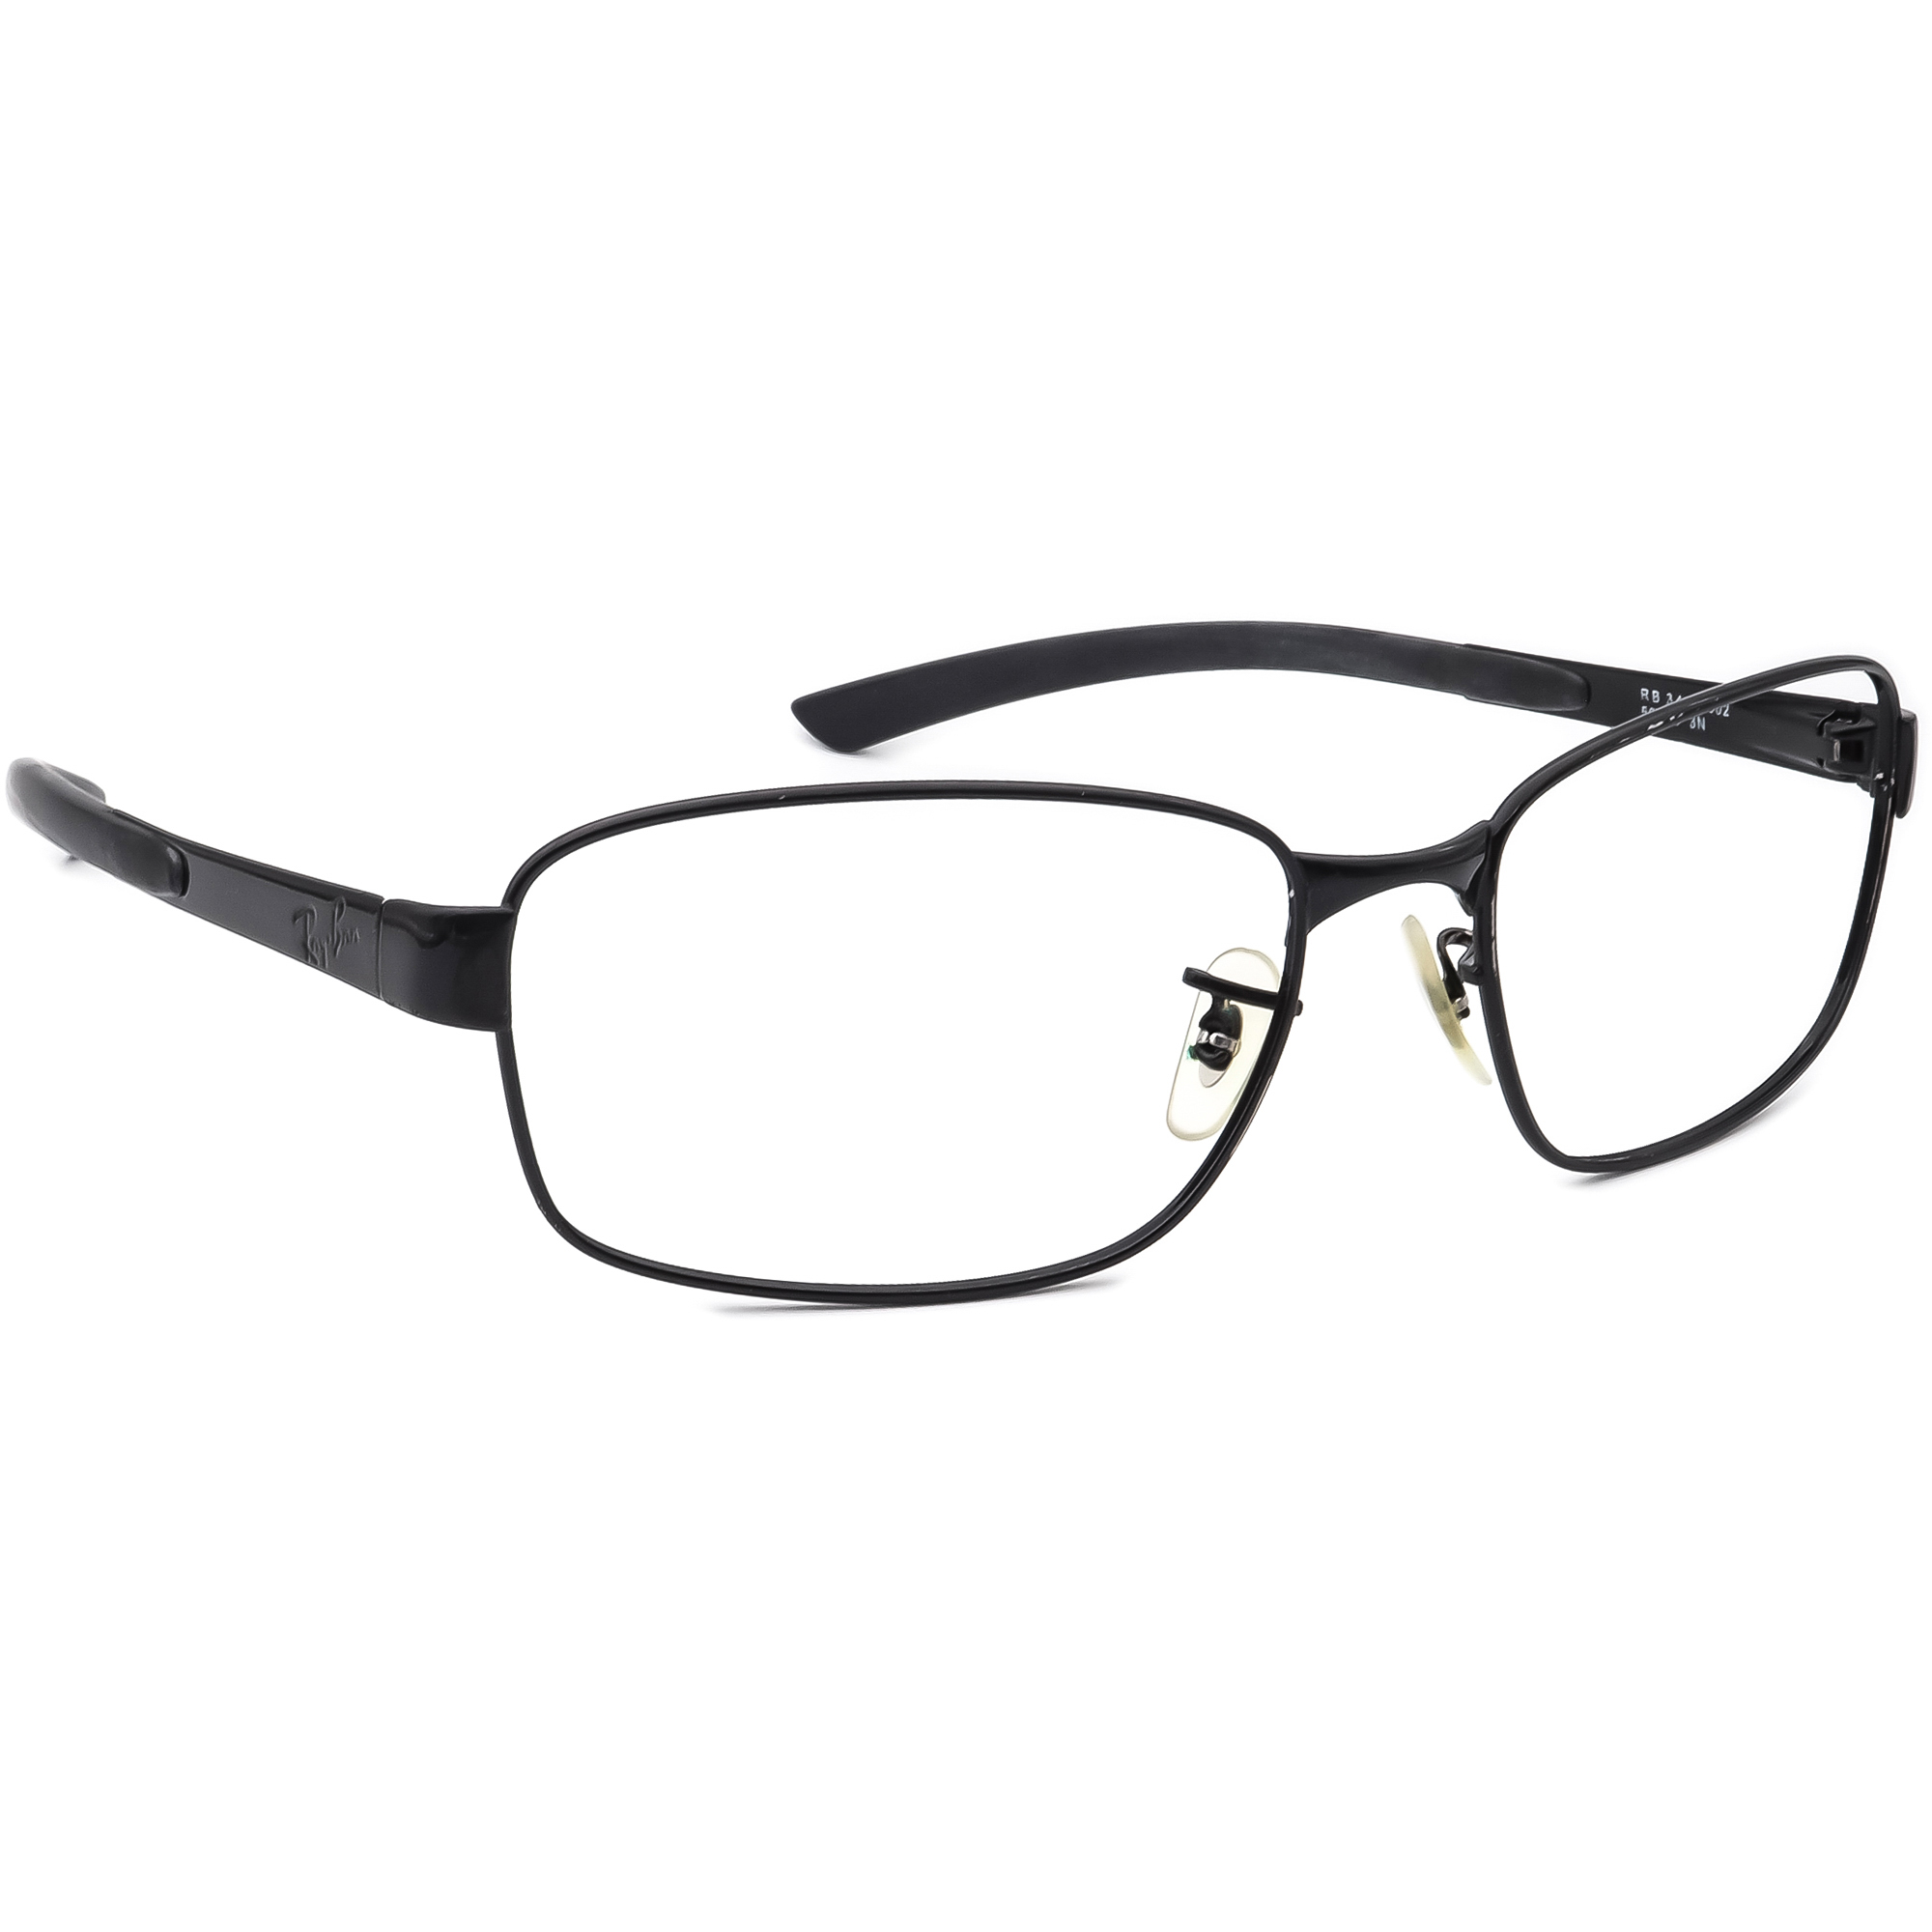 Ray-Ban RB 3413 002 Sunglasses Frame Only